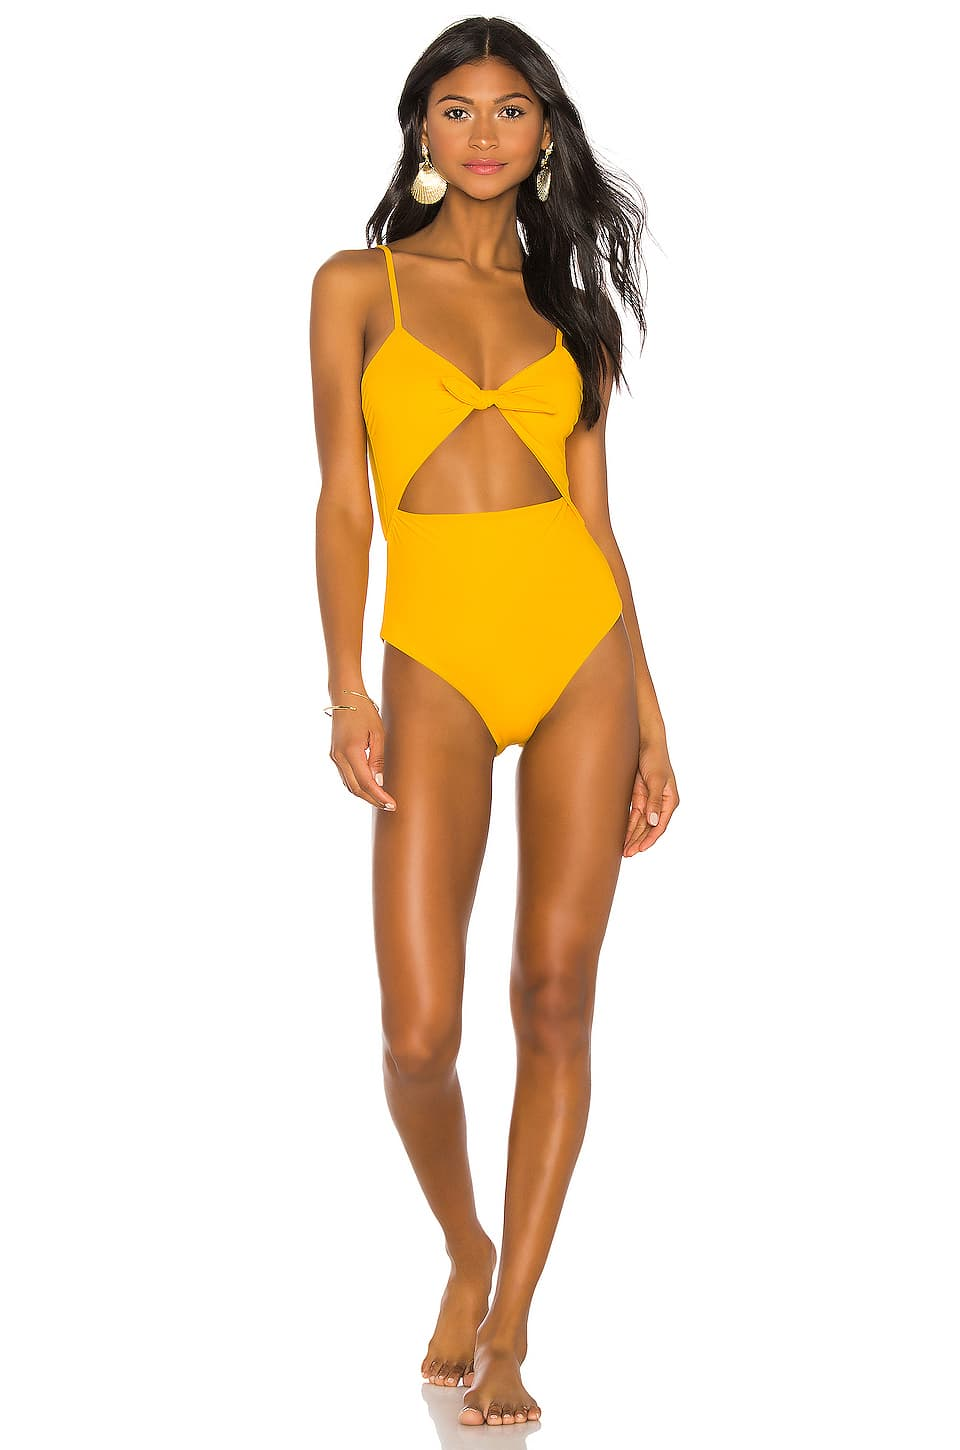 8c5e859e2b249 Made in the USA of Italian recycled polyester/spandex fabric, these bathing  suits have SPF50 built into their colorful, patterned fabrics.